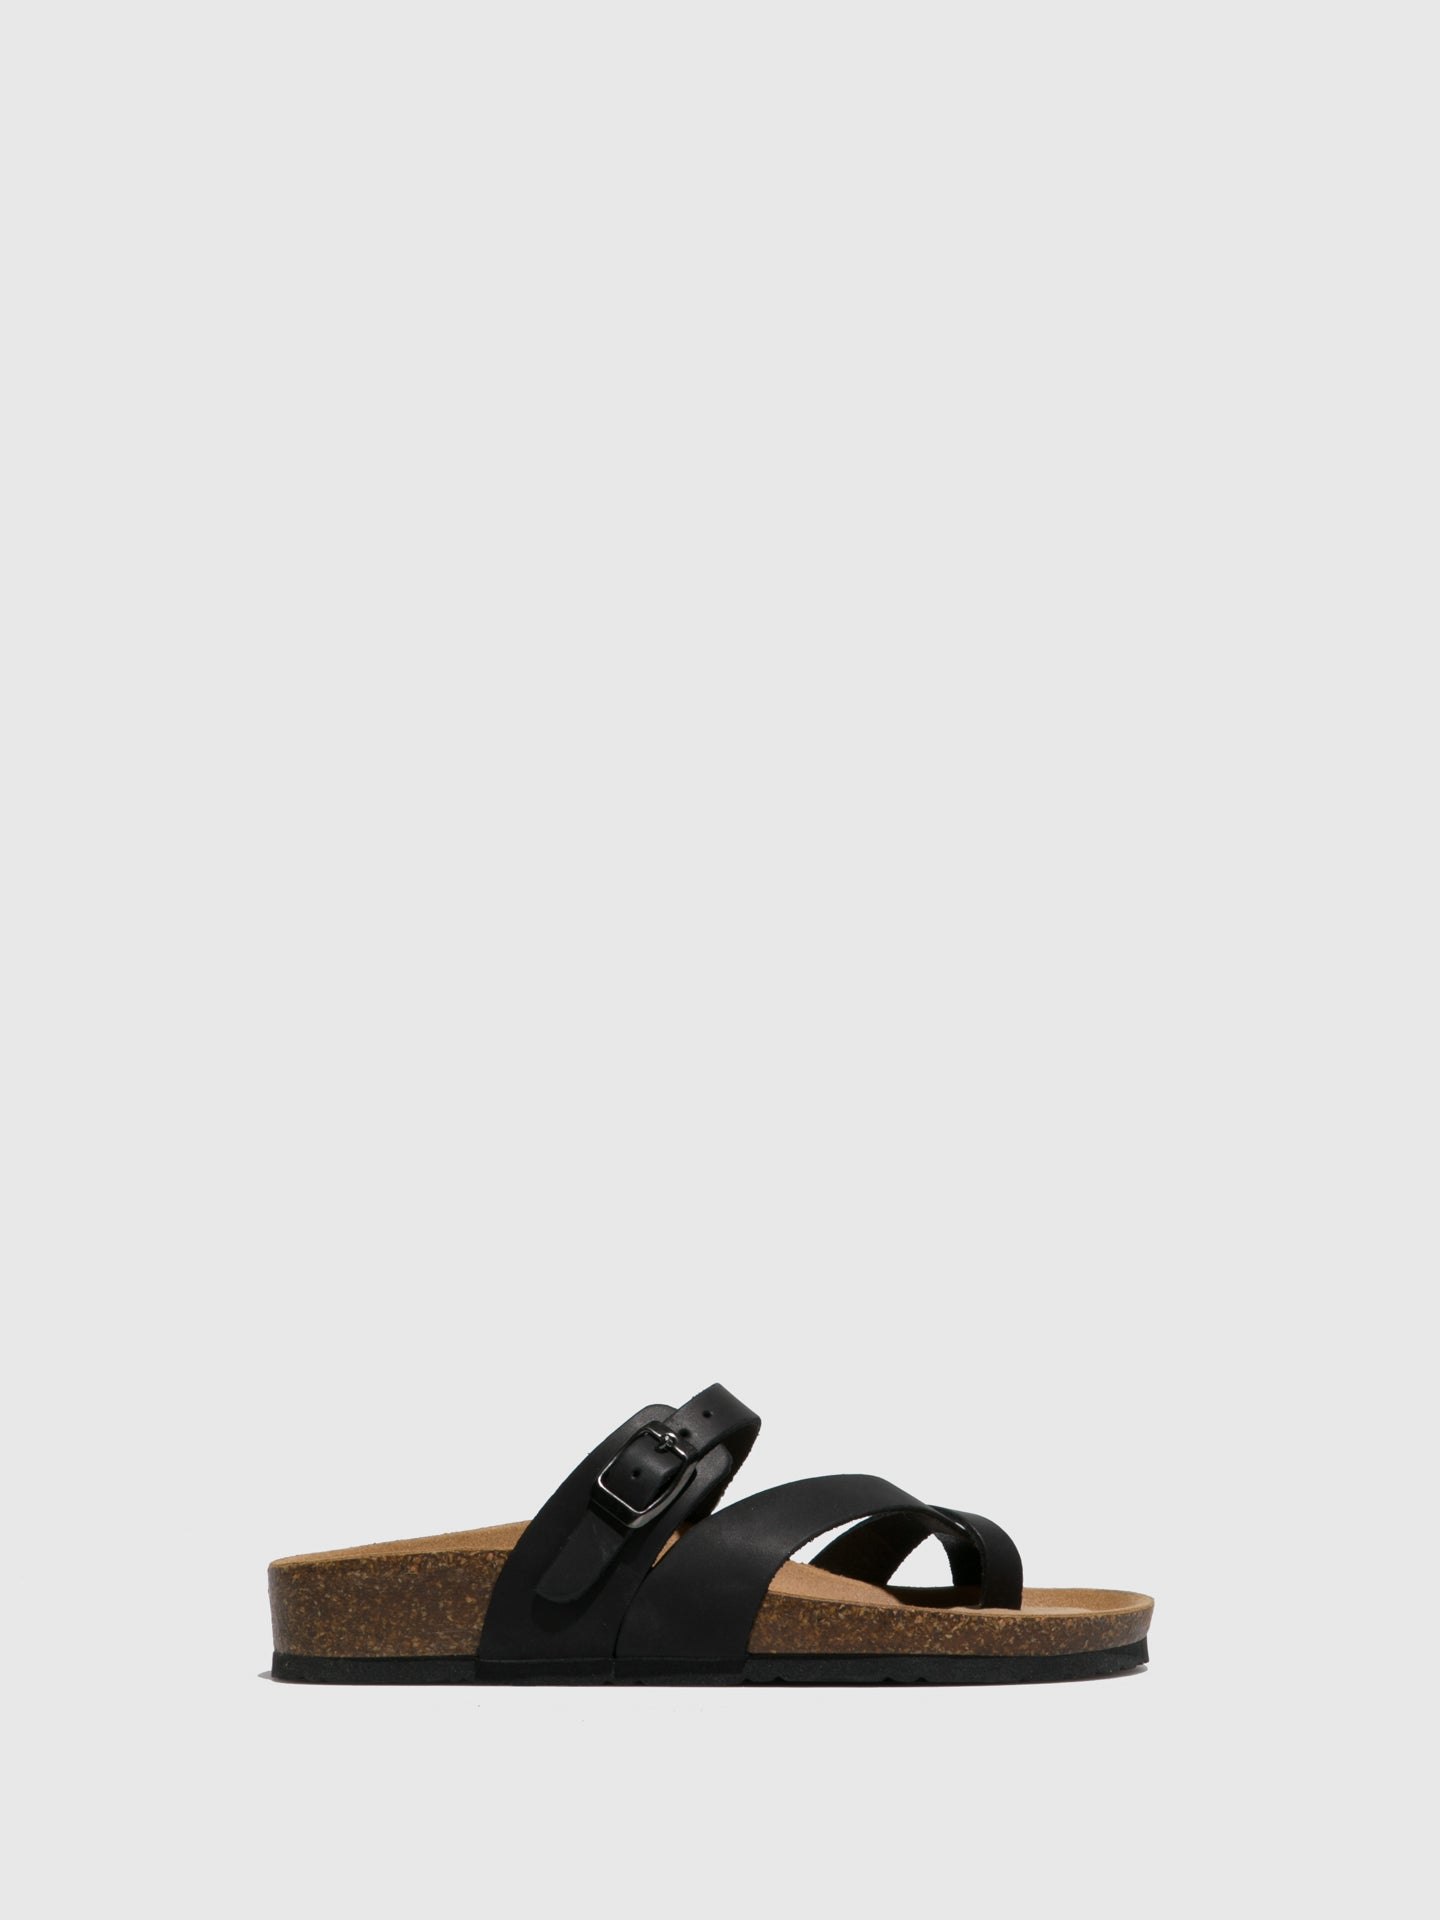 Bos&Co Black Thong Sandals